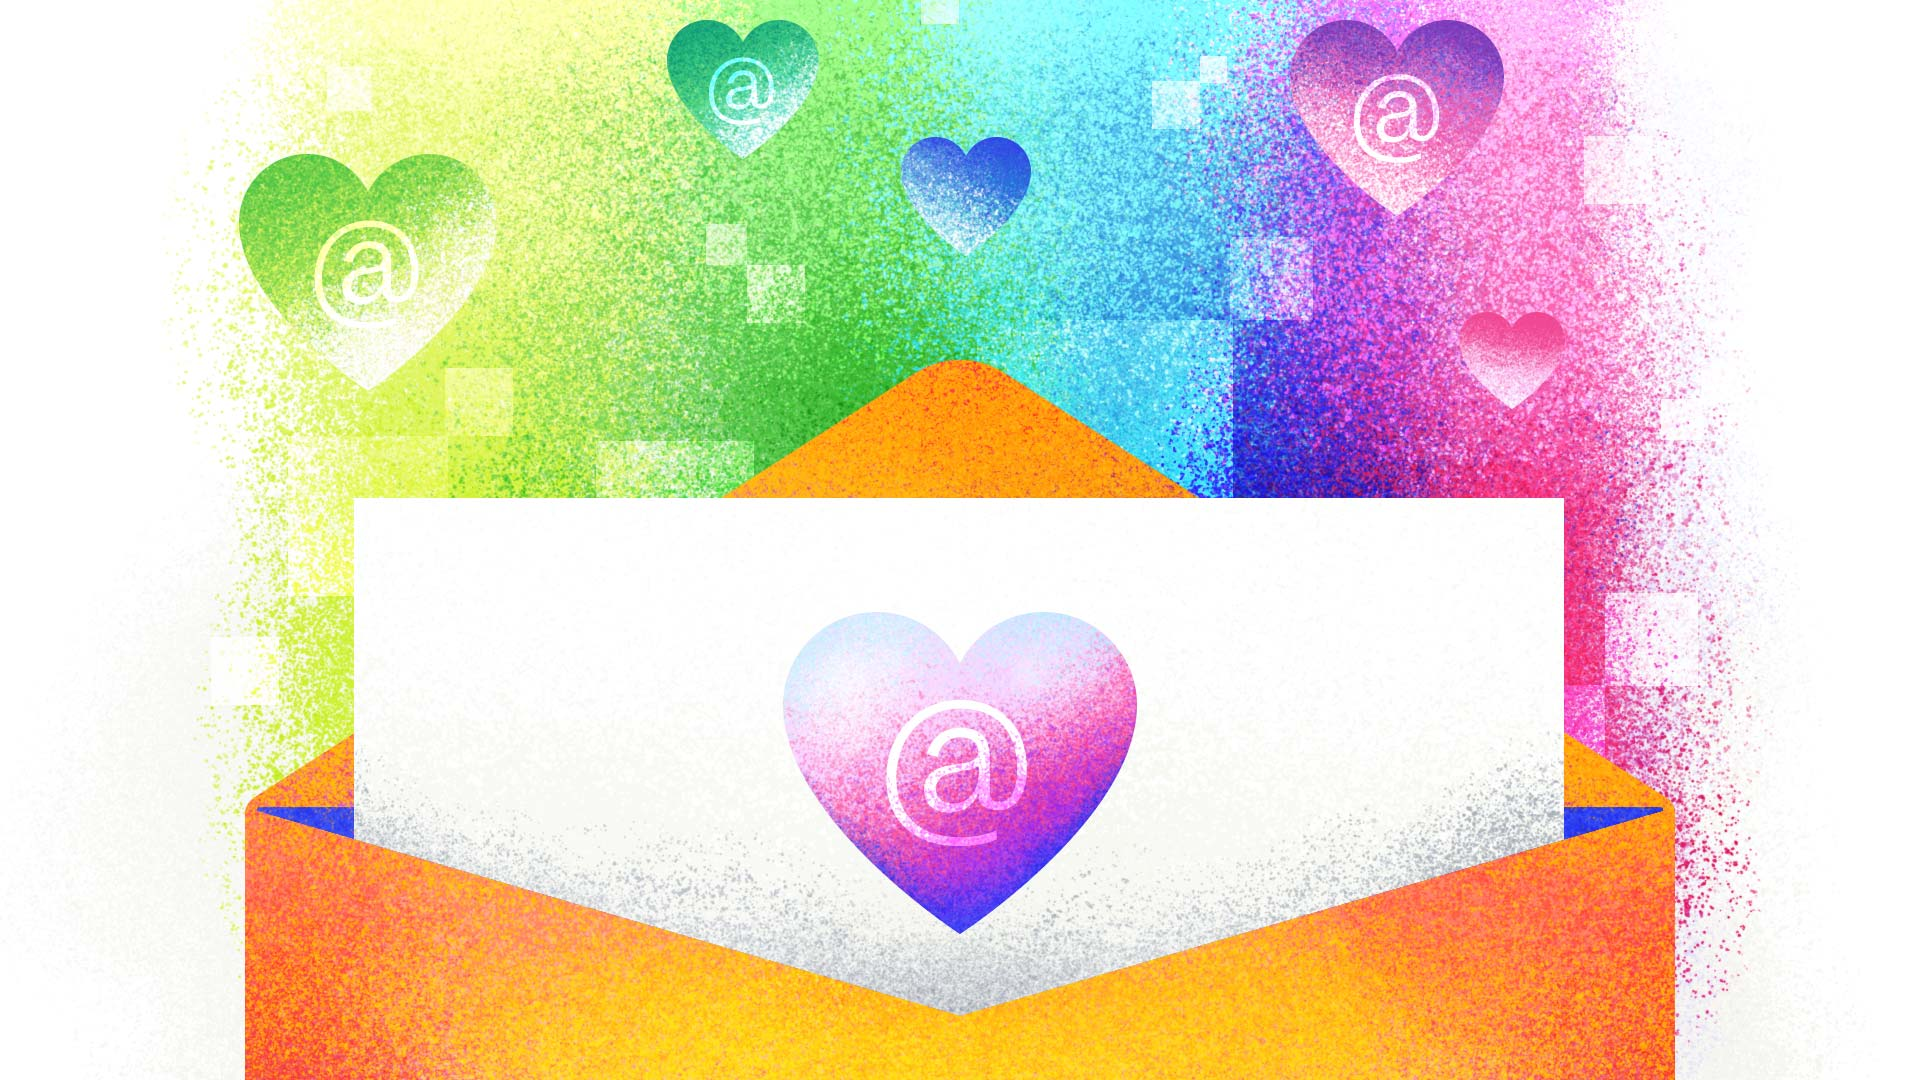 A large envelope is open, with a letter coming out of it. On the letter is a colorful heart with the @ symbol on it. Behind the envelope floats a rainbow of smaller hearts with @ email symbols.